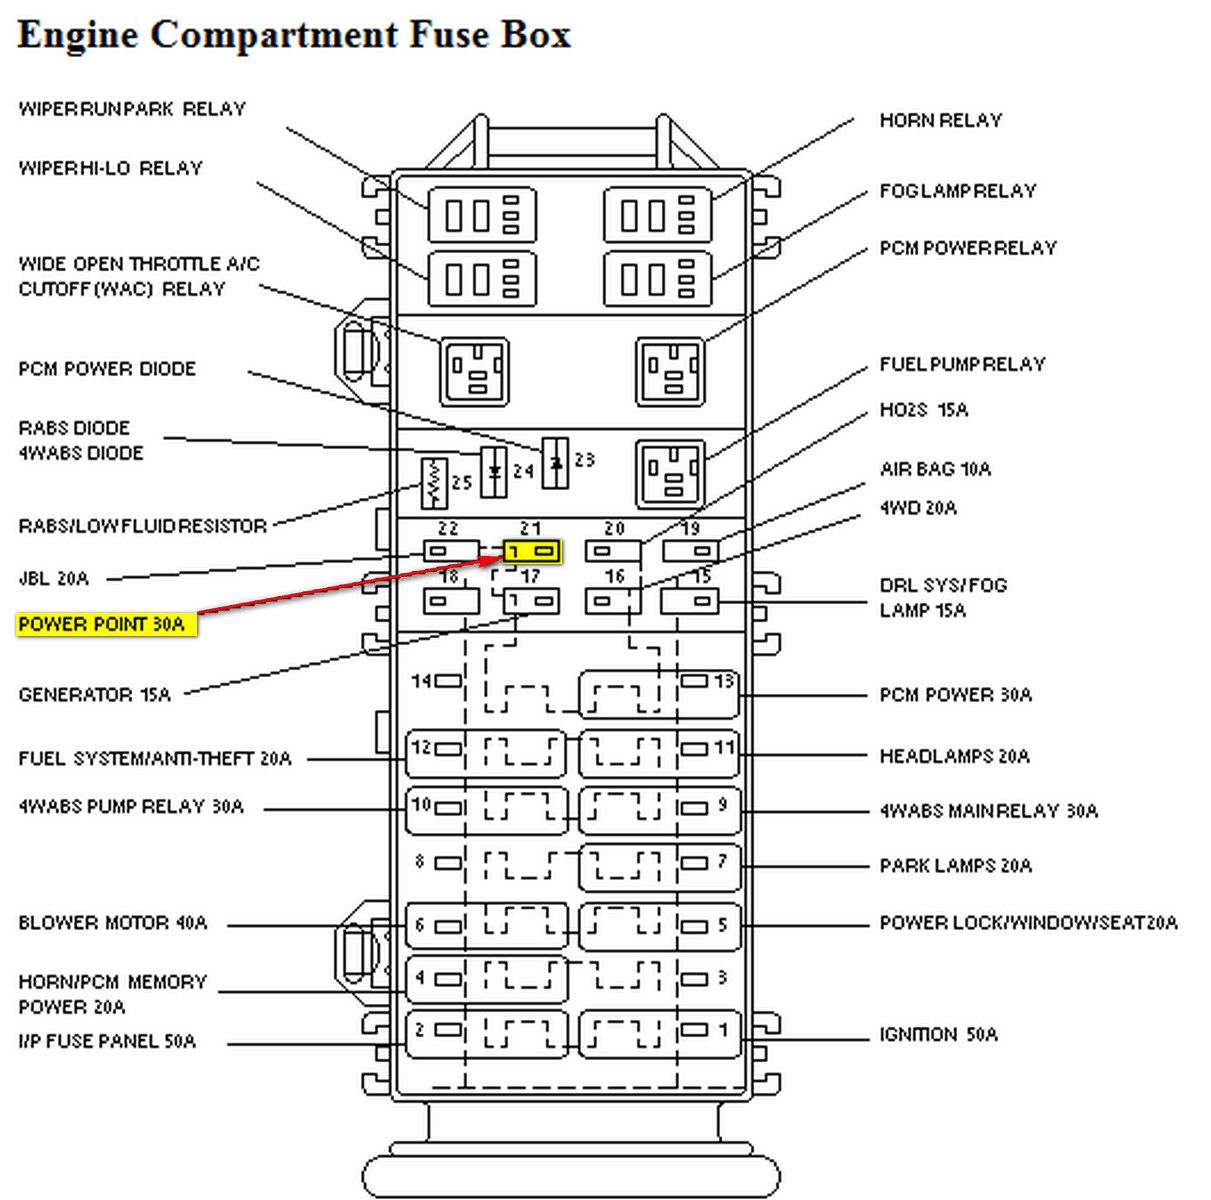 1995 ford mustang interior fuse panel diagram